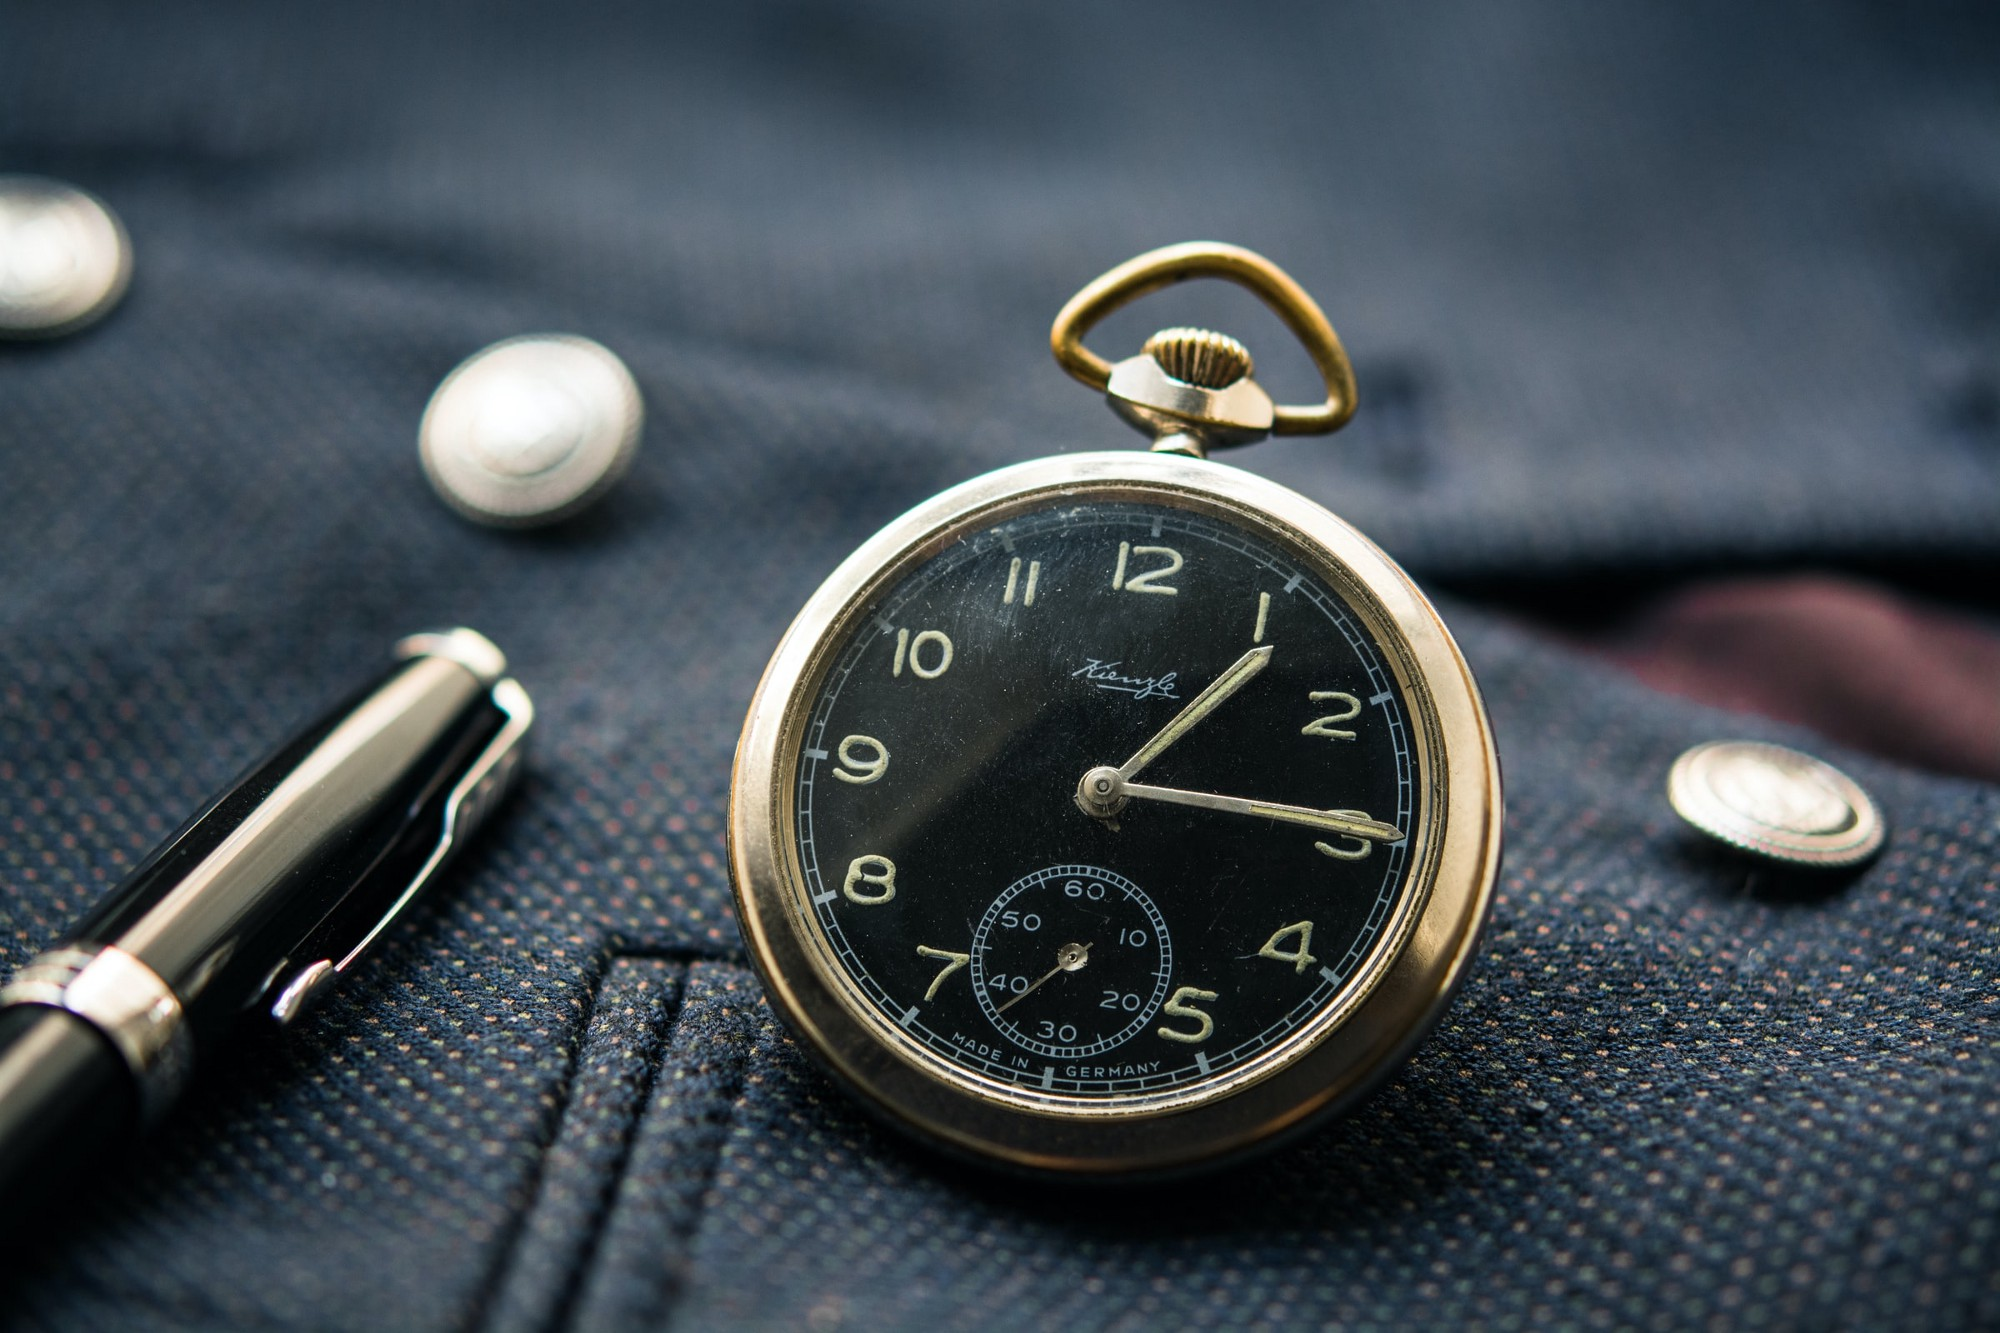 A black pocket watch.